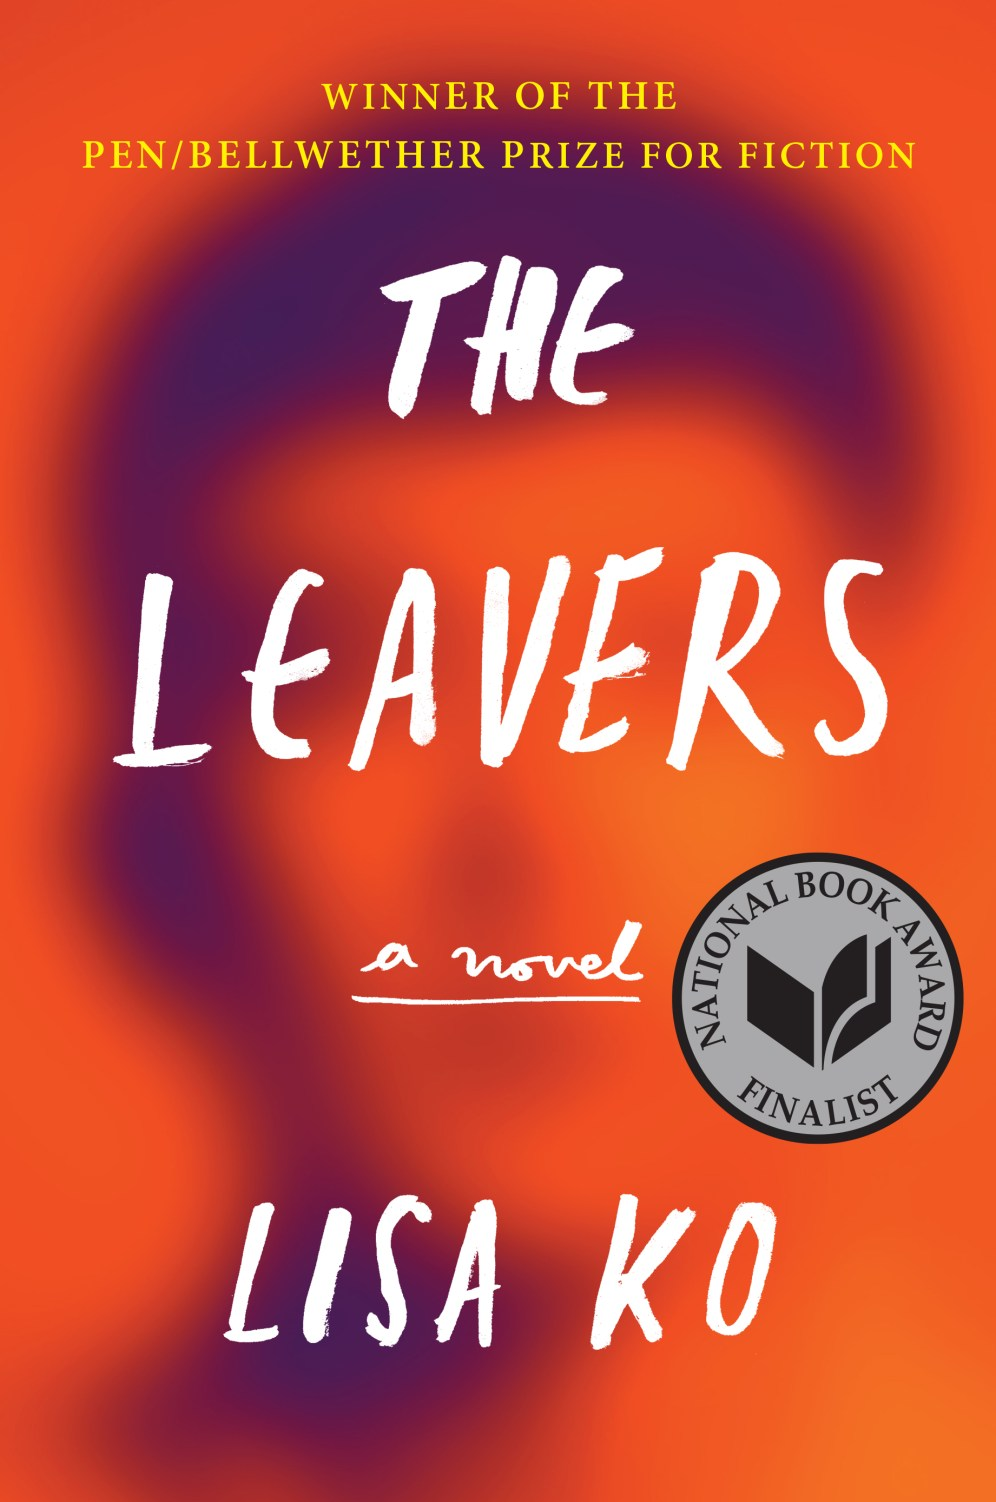 Lisa Ko's novel, The Leavers.